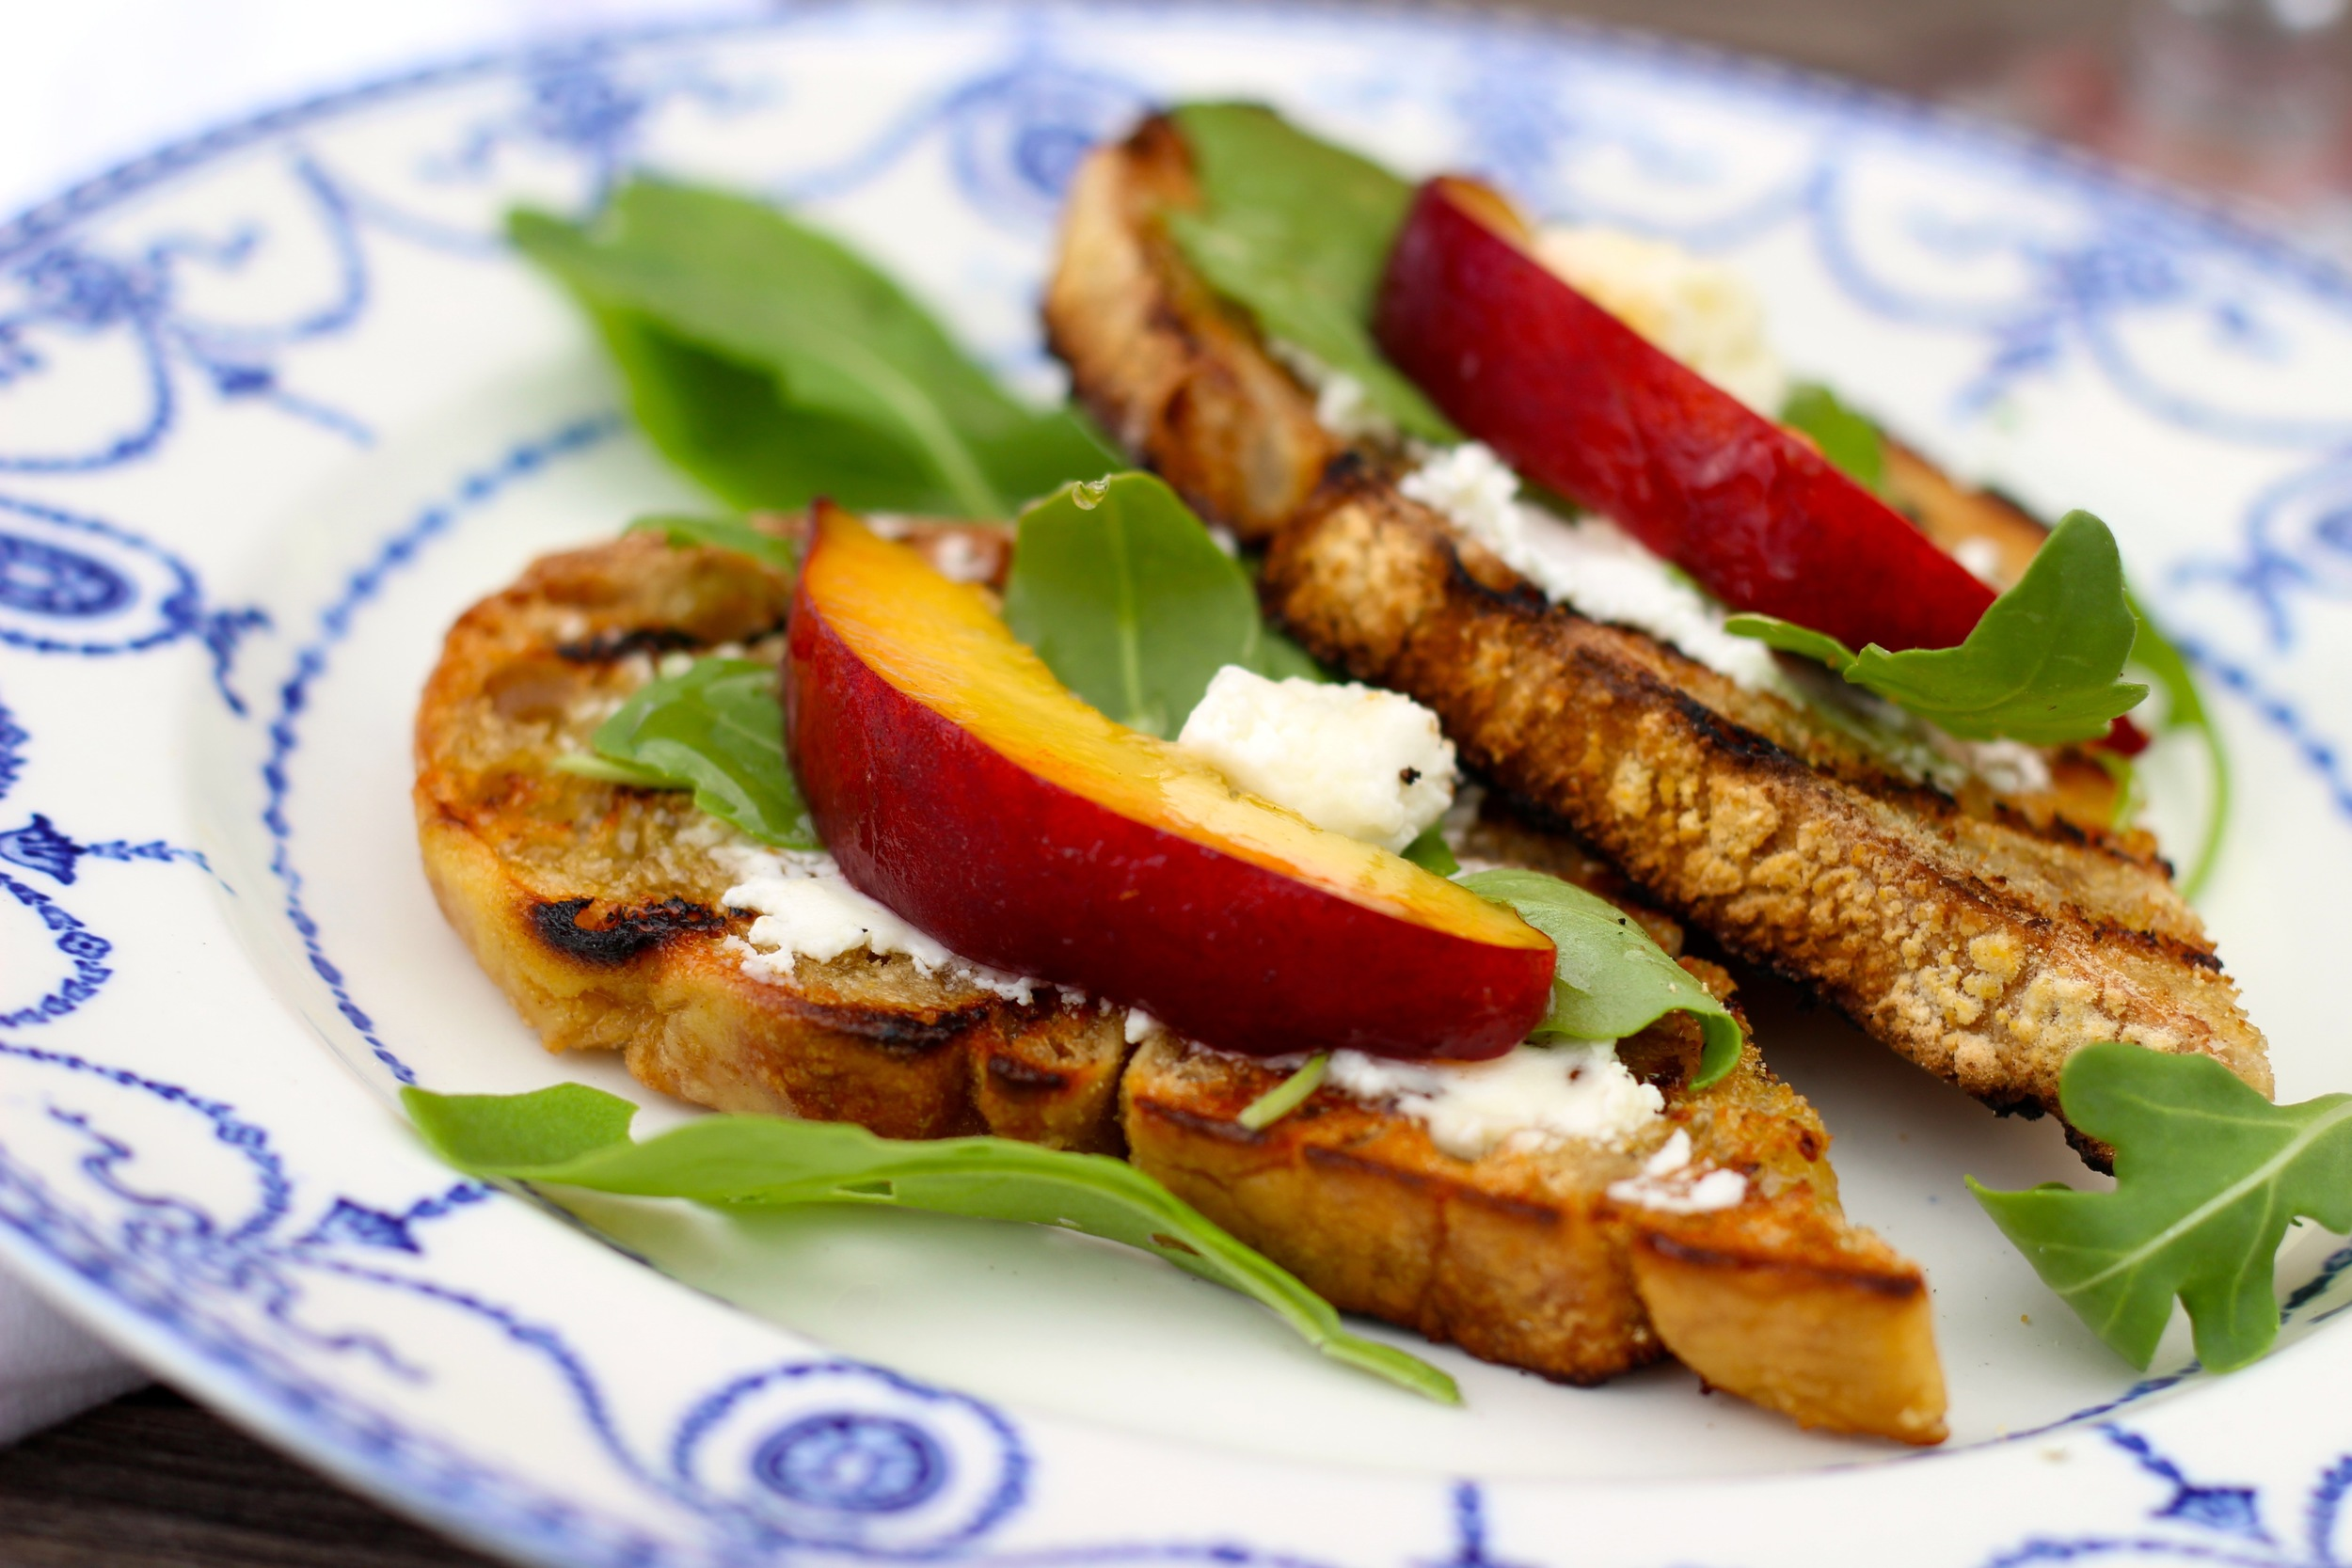 Bruschetta-Goat-Cheese-Peach-Arugula